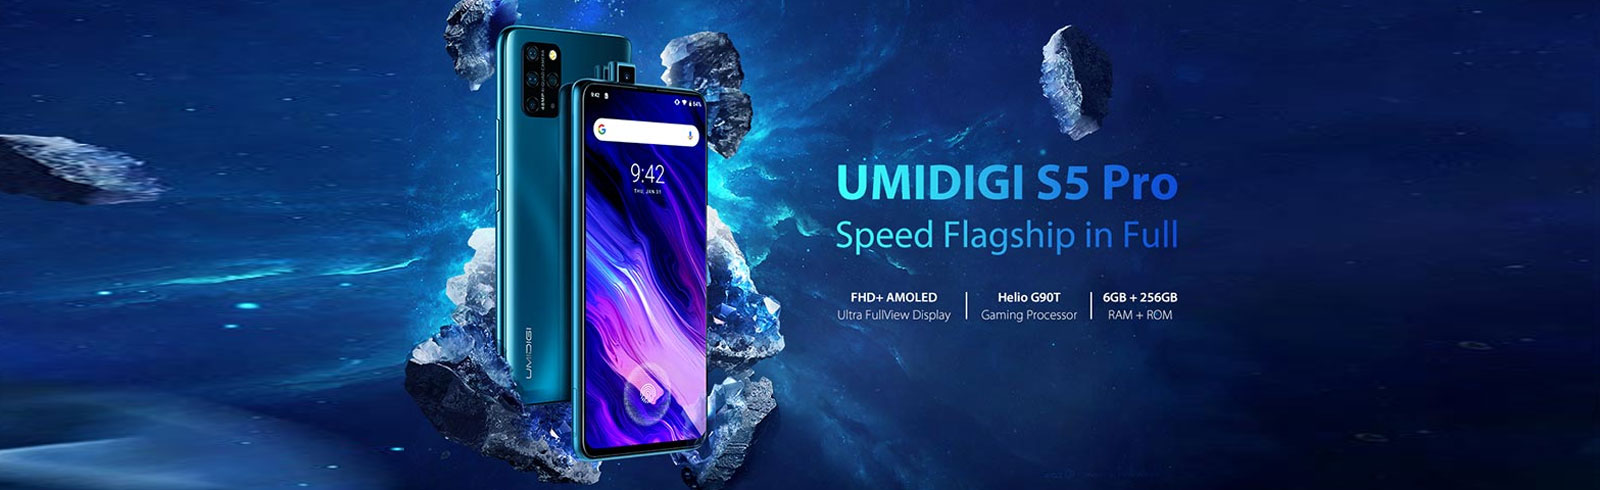 UMIDIGI S5 Pro goes official with a pop-up selfie camera, AMOLED display, Helio G90T chipset